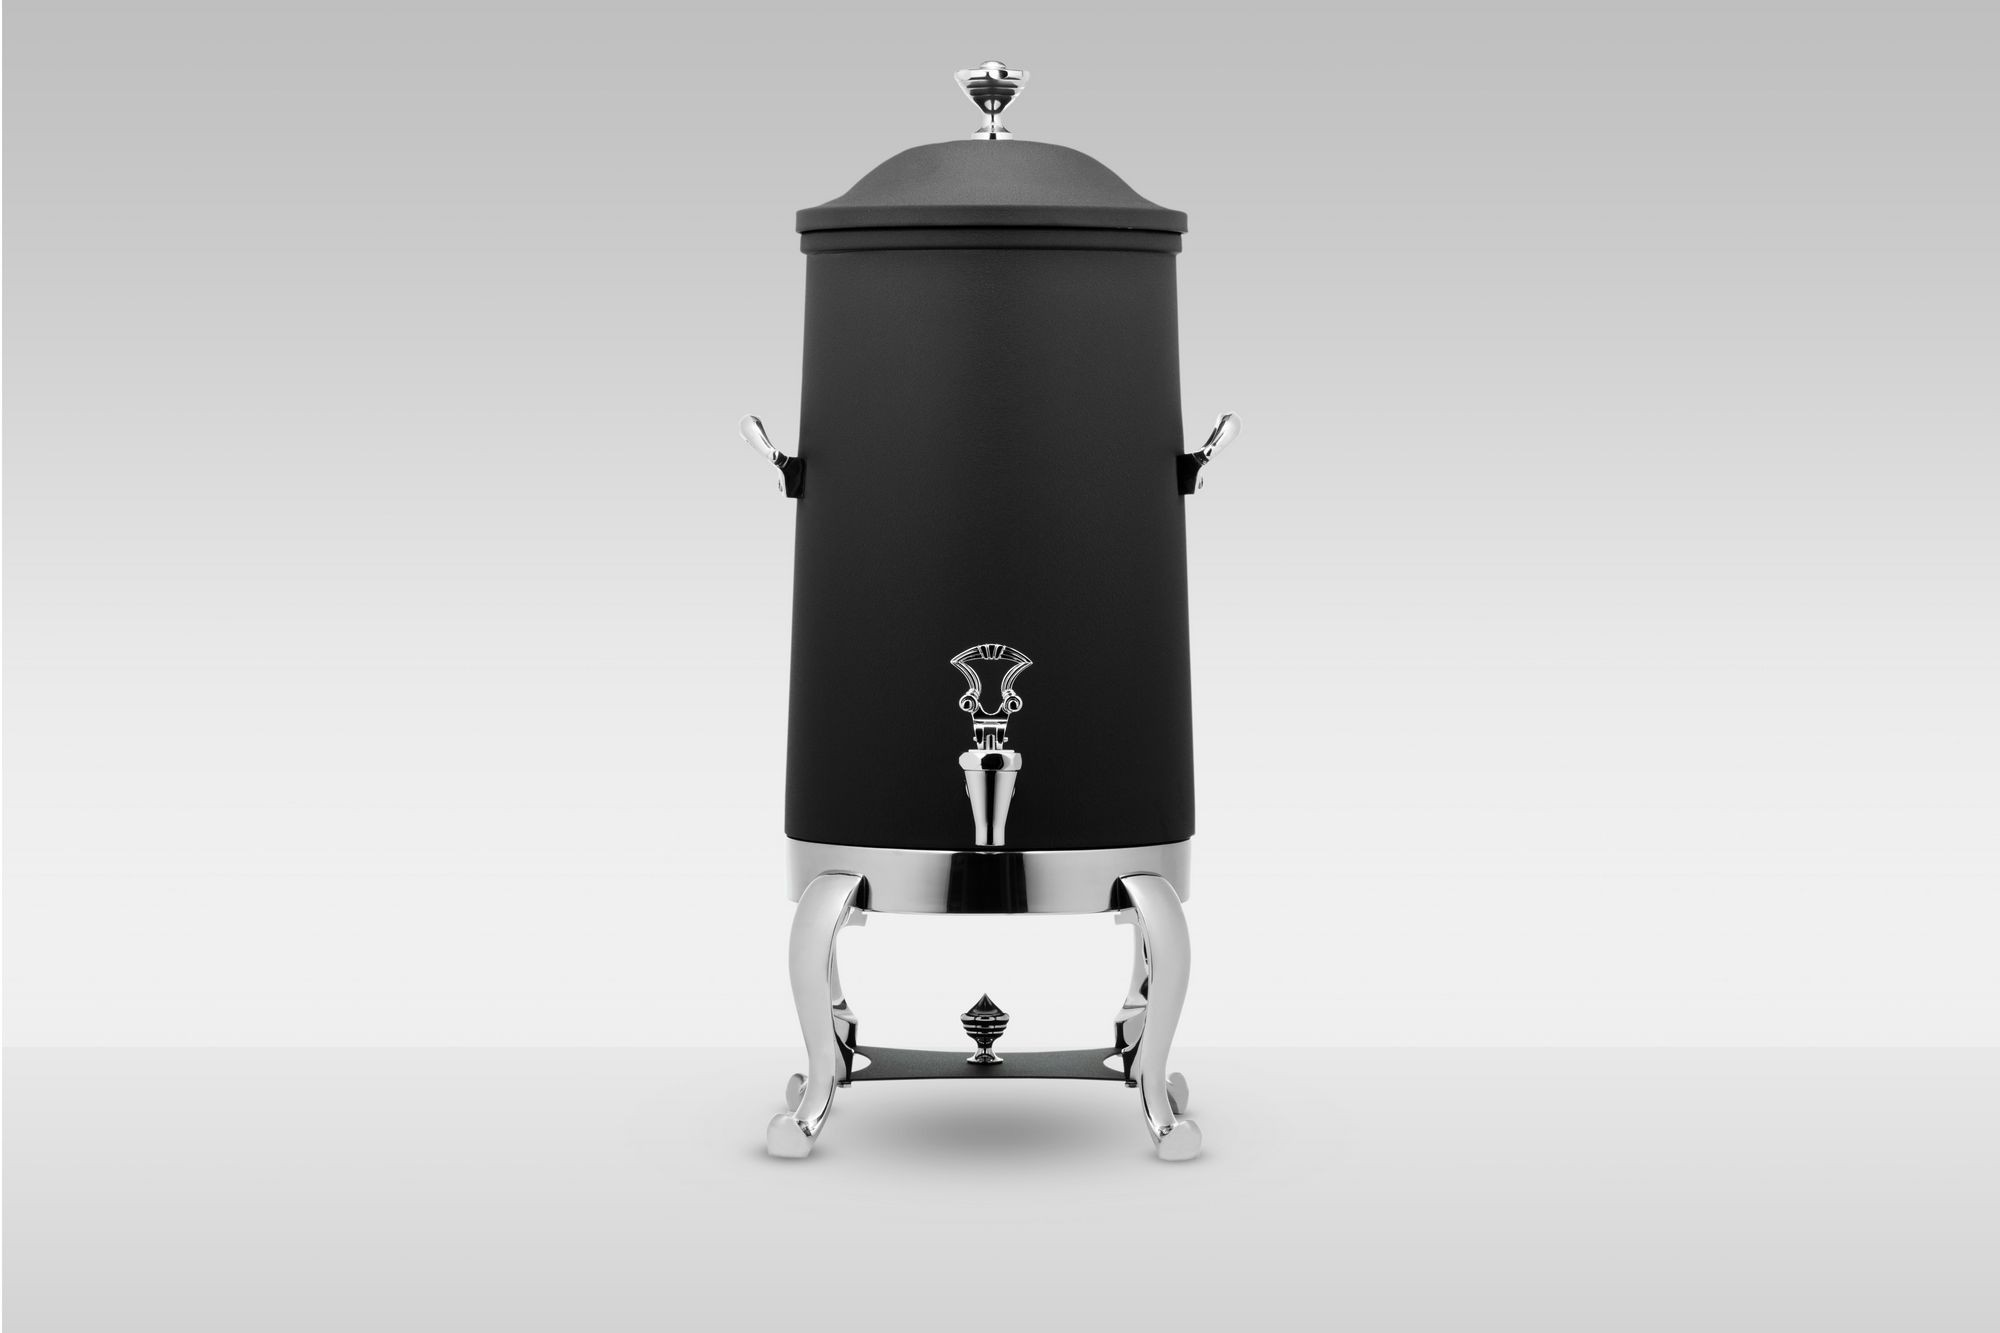 Bon Chef 49003-Nero Roman Insulated Coffee Urn with Brass Trim and Nero Finish, 3 Gallon